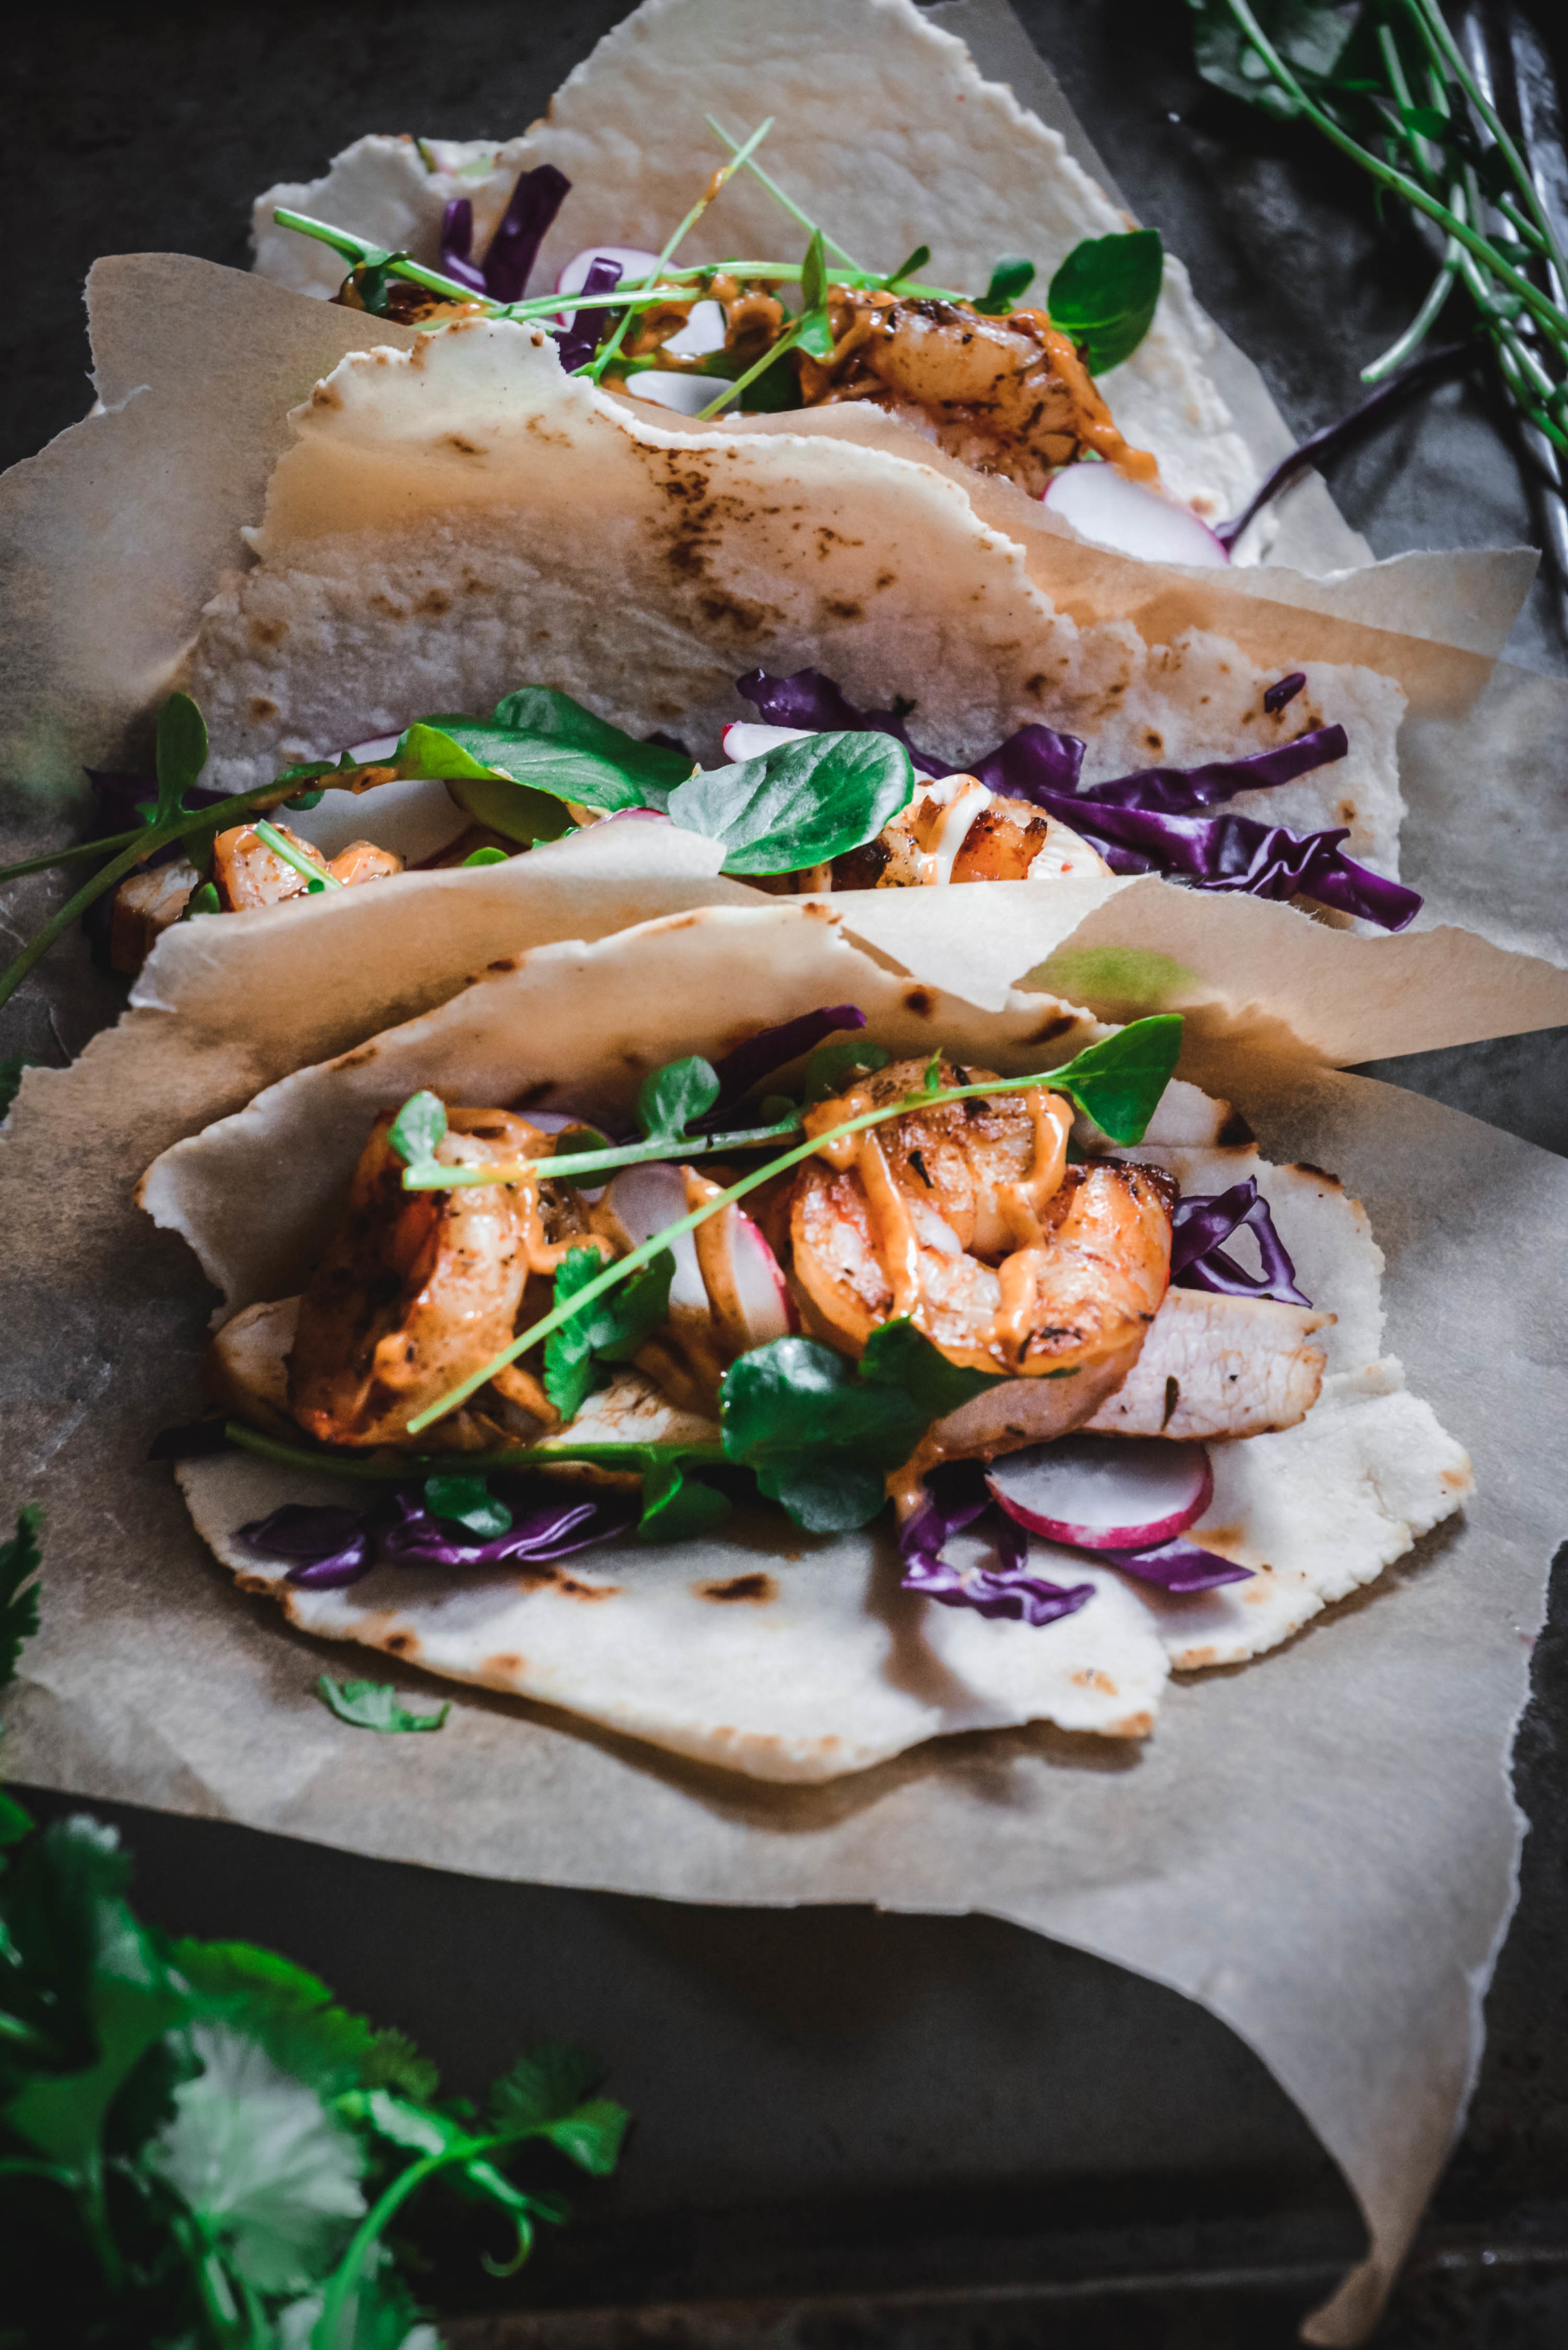 Jerk Chicken and Shrimp Tacos with Jerk mayo and greens